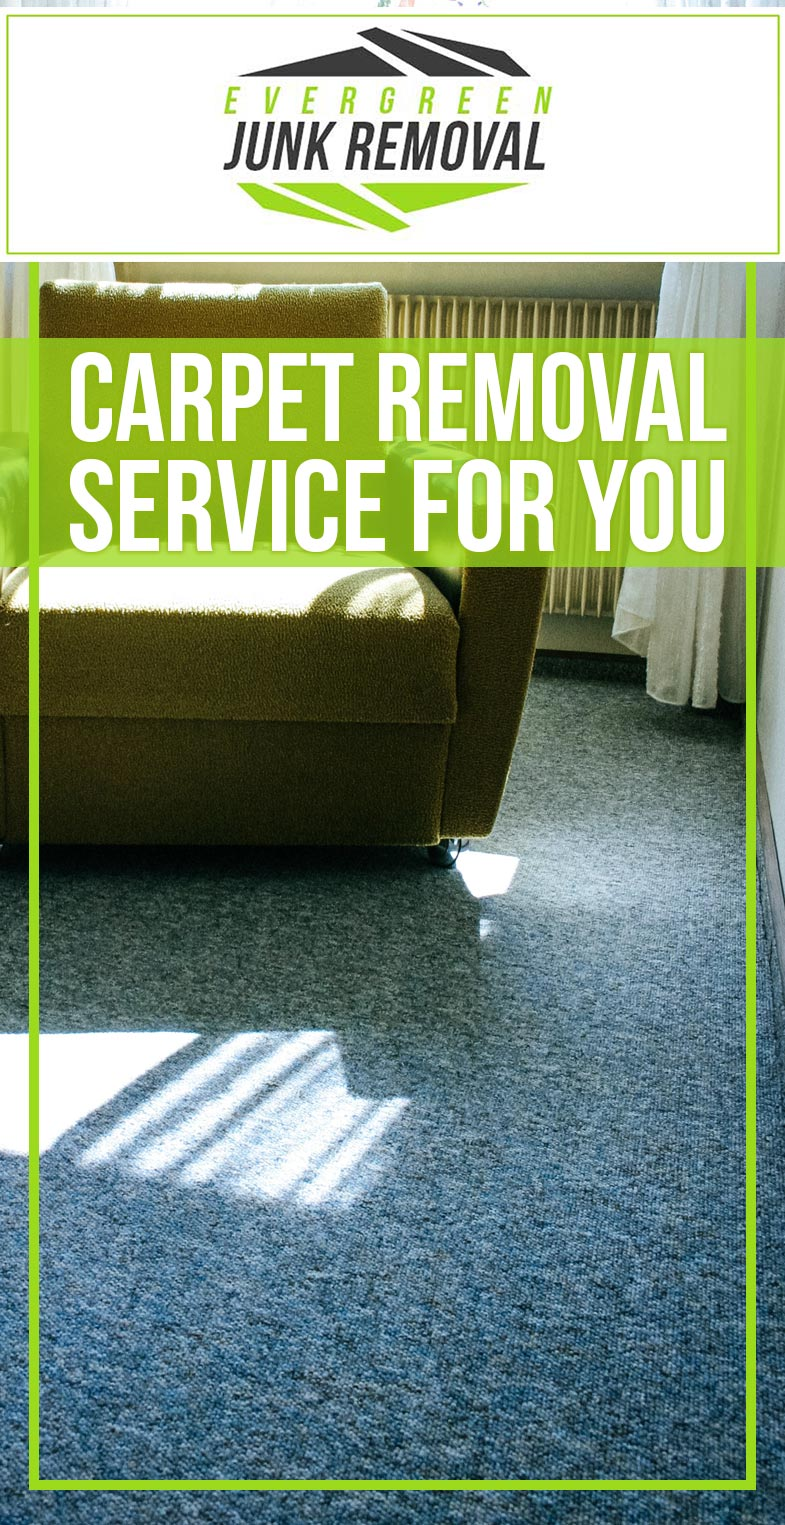 Carpet Disposal Service